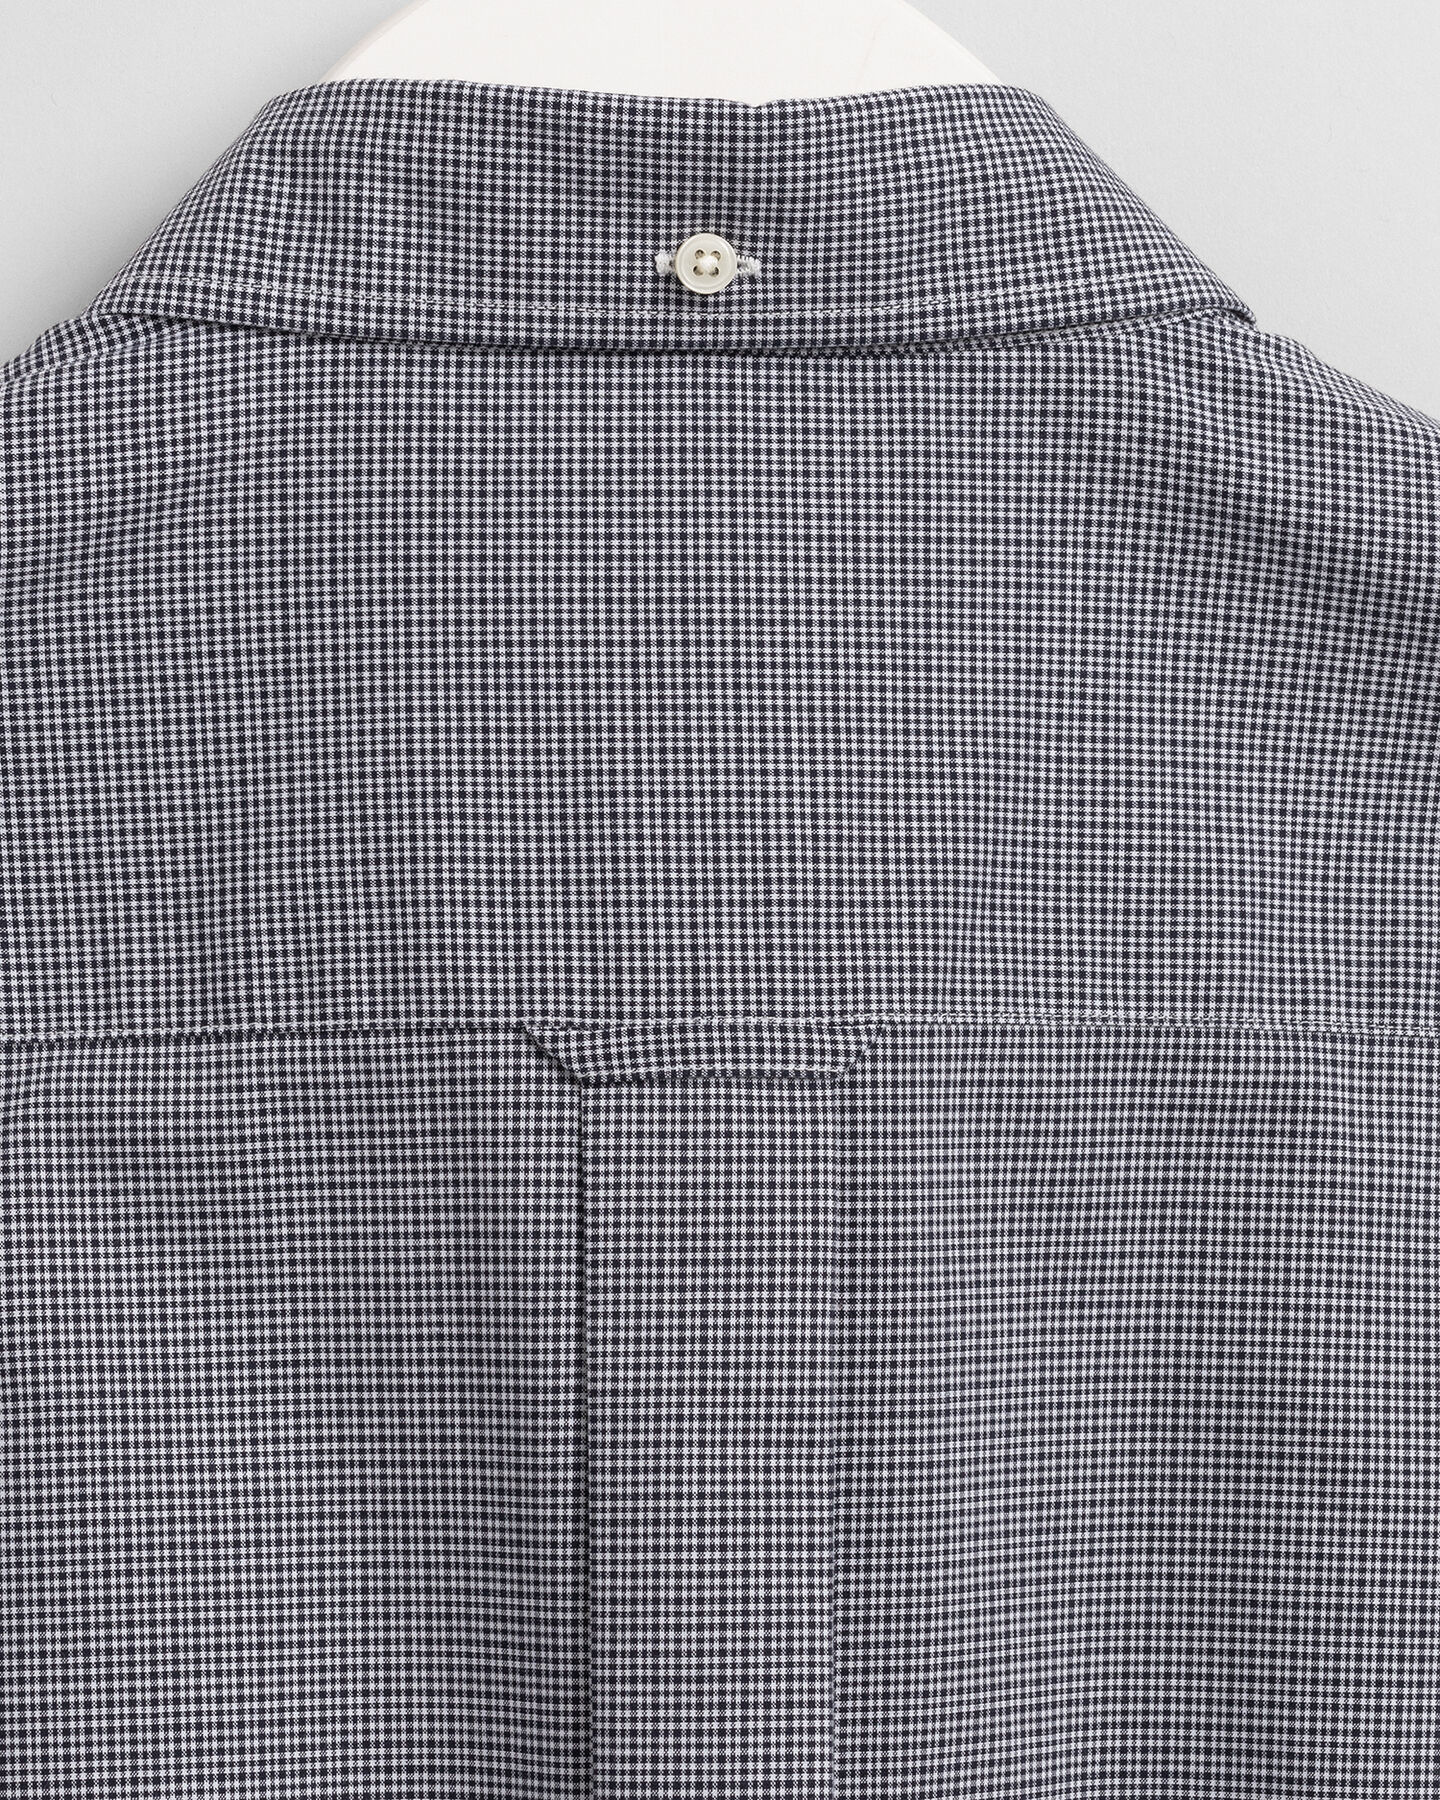 Regular Fit Broadcloth Hemd mit Mini-Karomuster